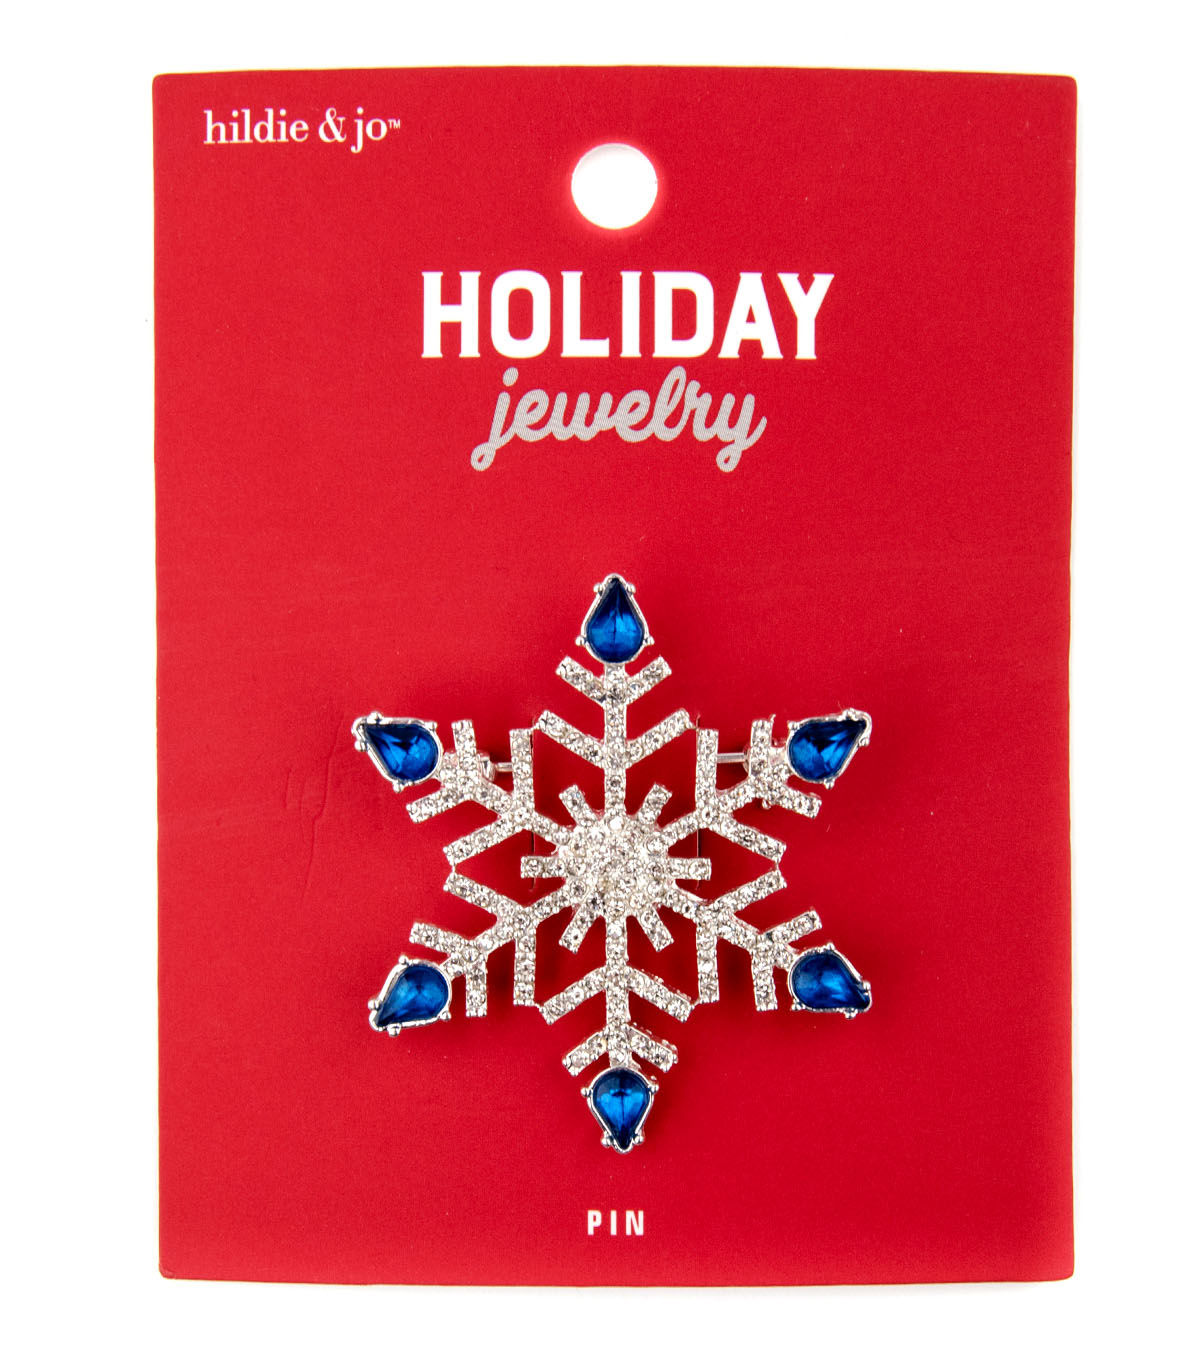 hildie & jo Christmas Holiday Jewelry Star Pin-Blue & Silver Rhinestones